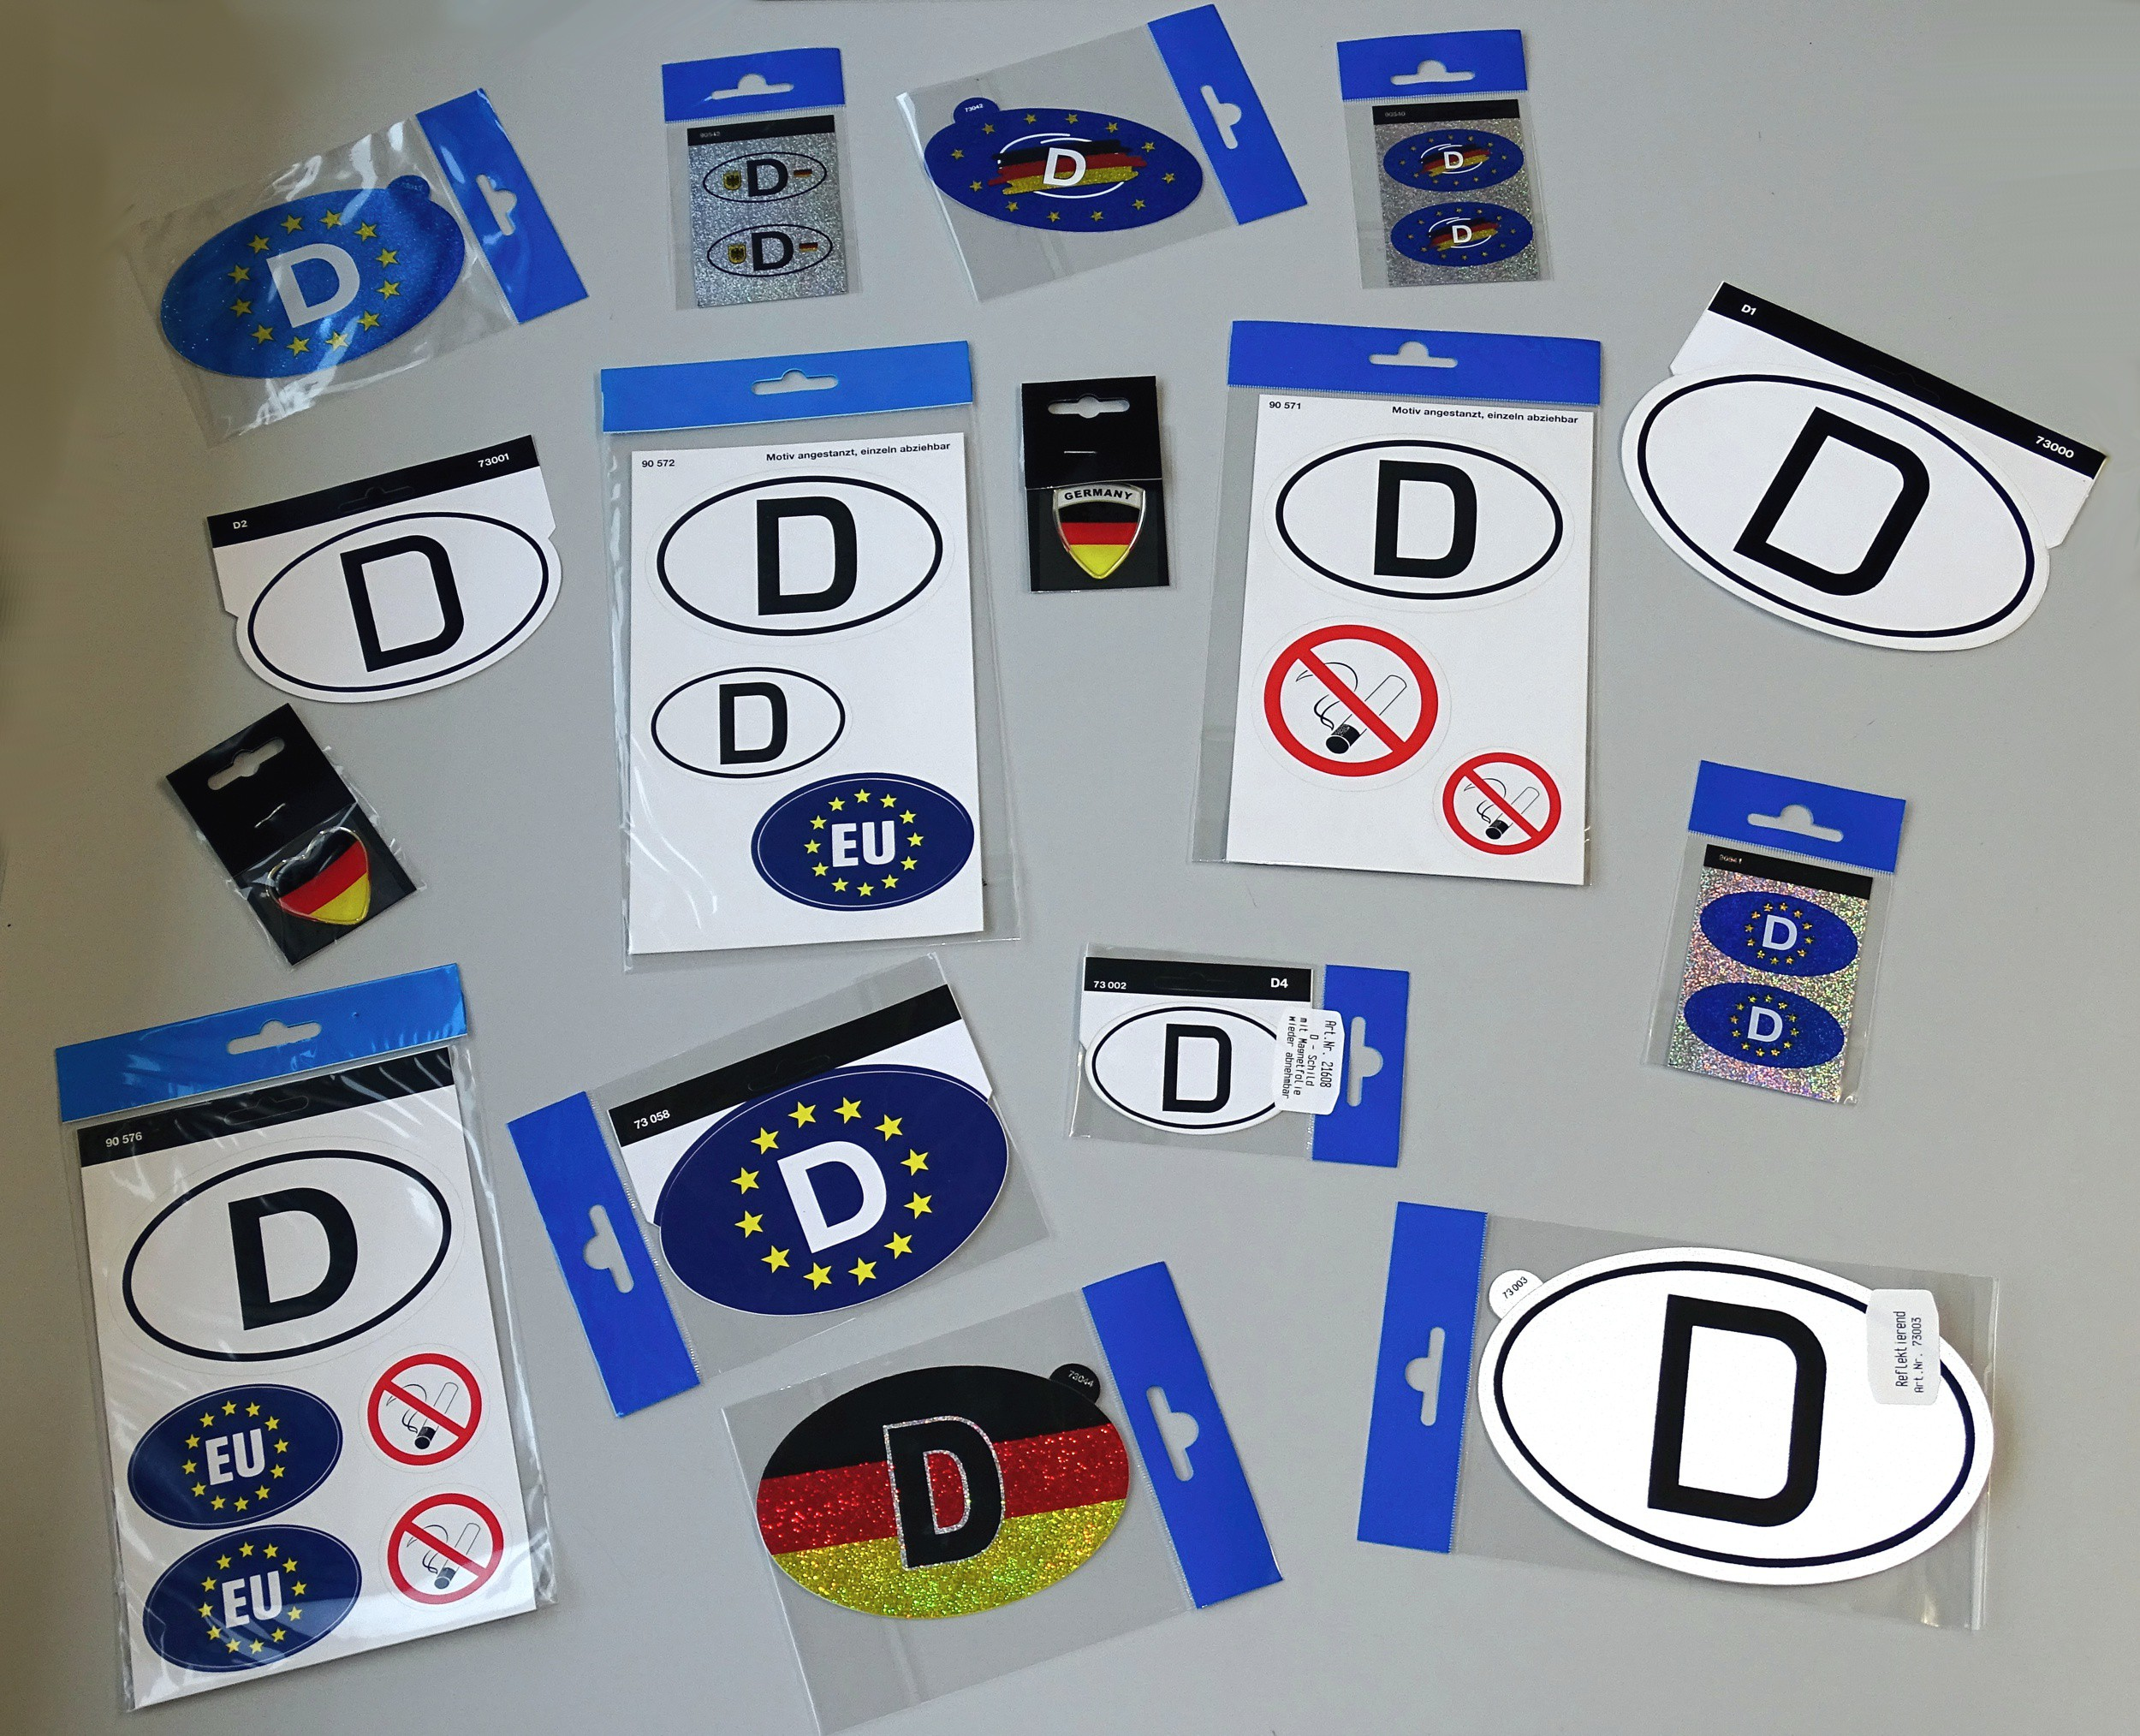 Sticker Europe-D holography 125 x 85 mm – Bild 3